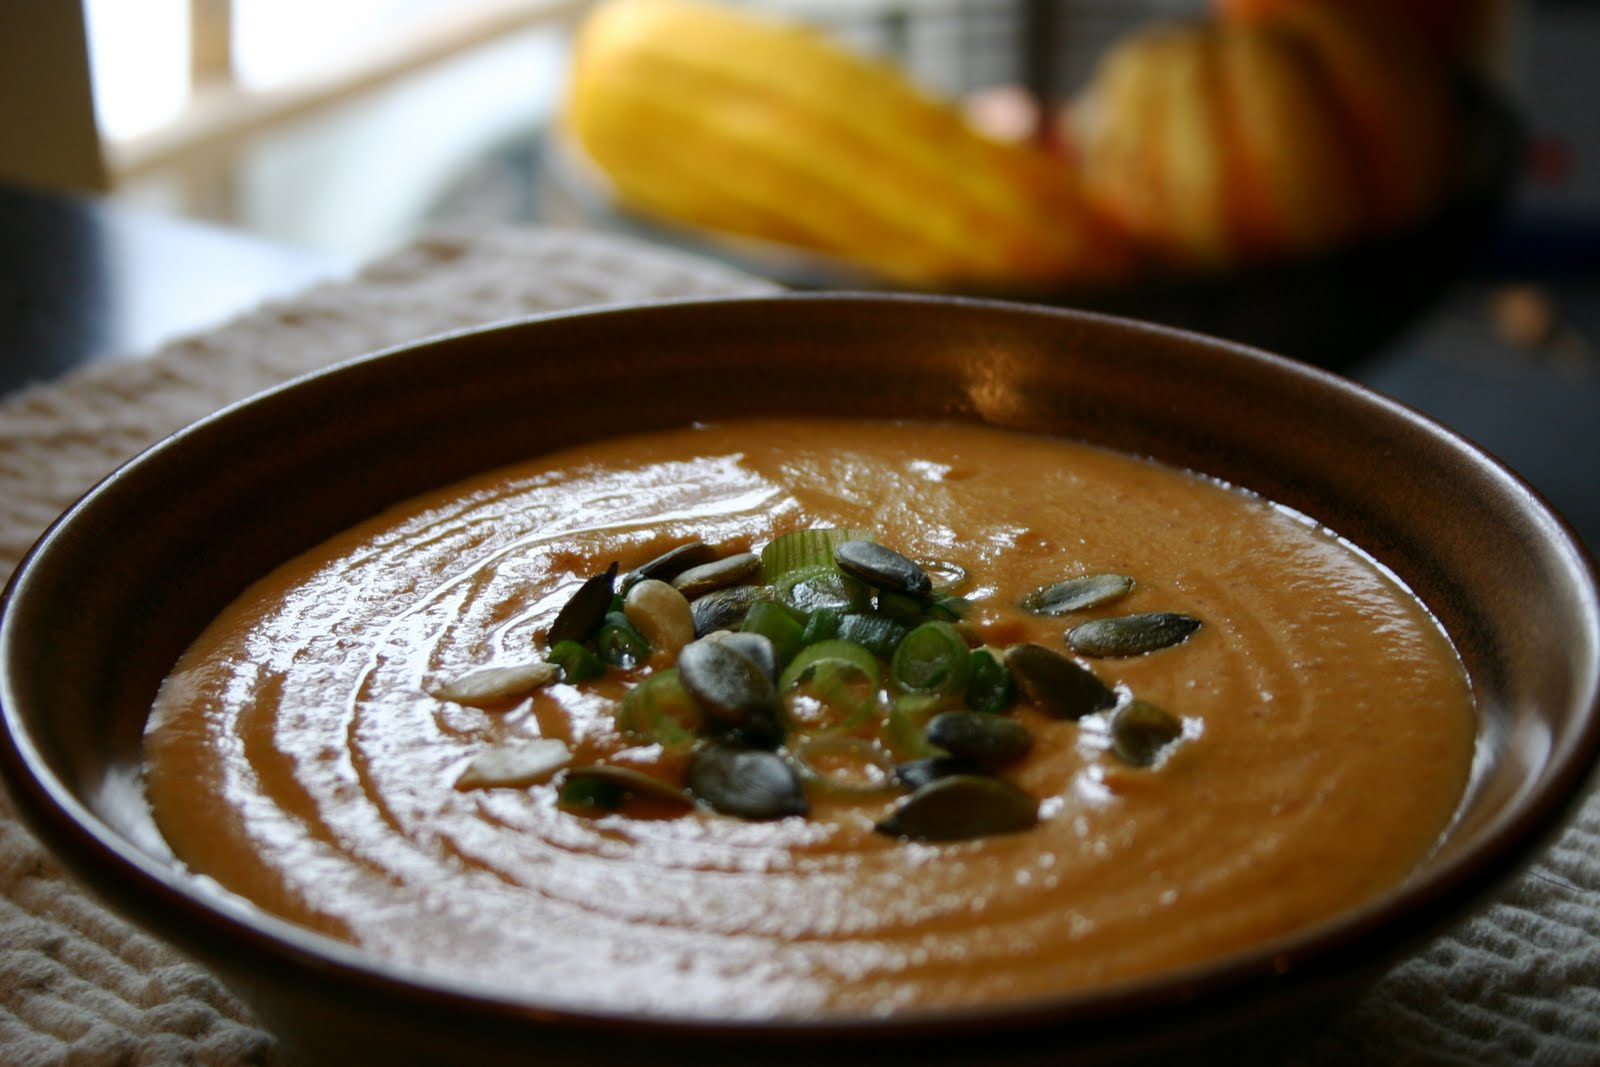 How To Make Spicy African Yam Soup : Glorious Soup Recipes